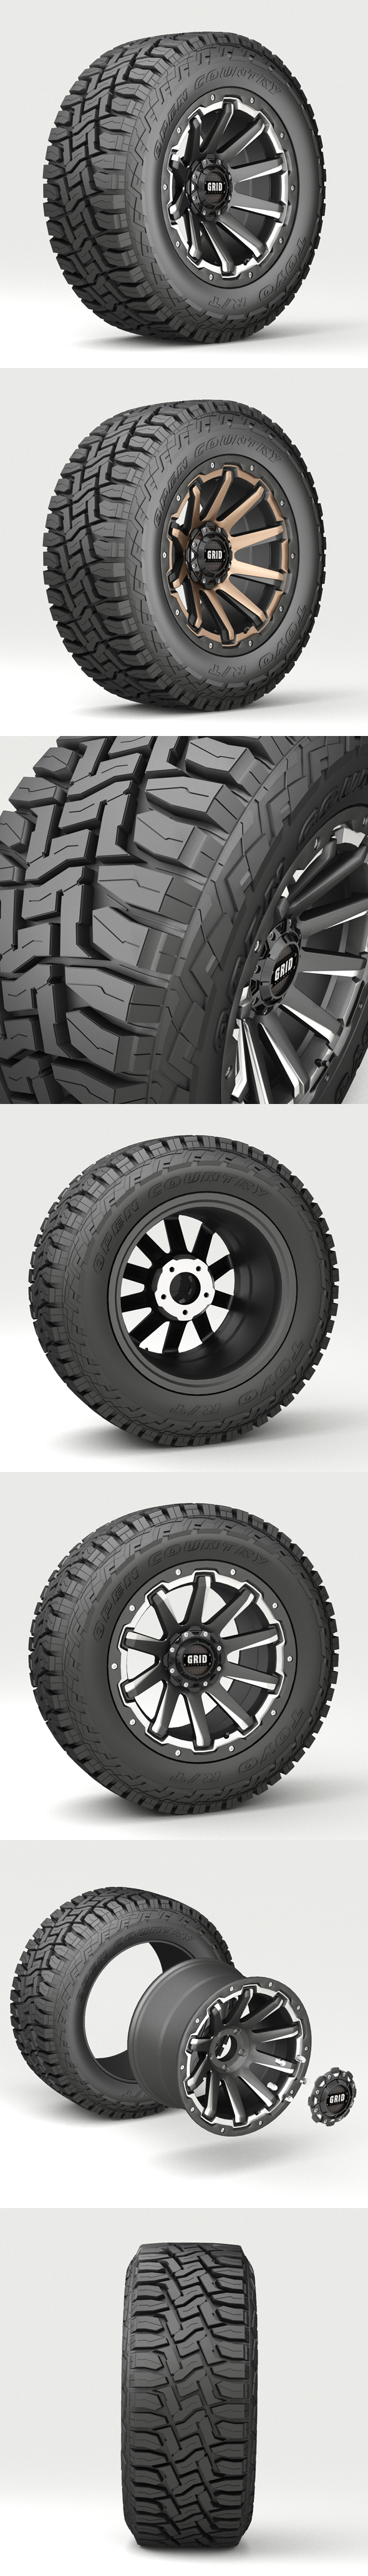 Off Road wheel and tire 4 - 3DOcean Item for Sale